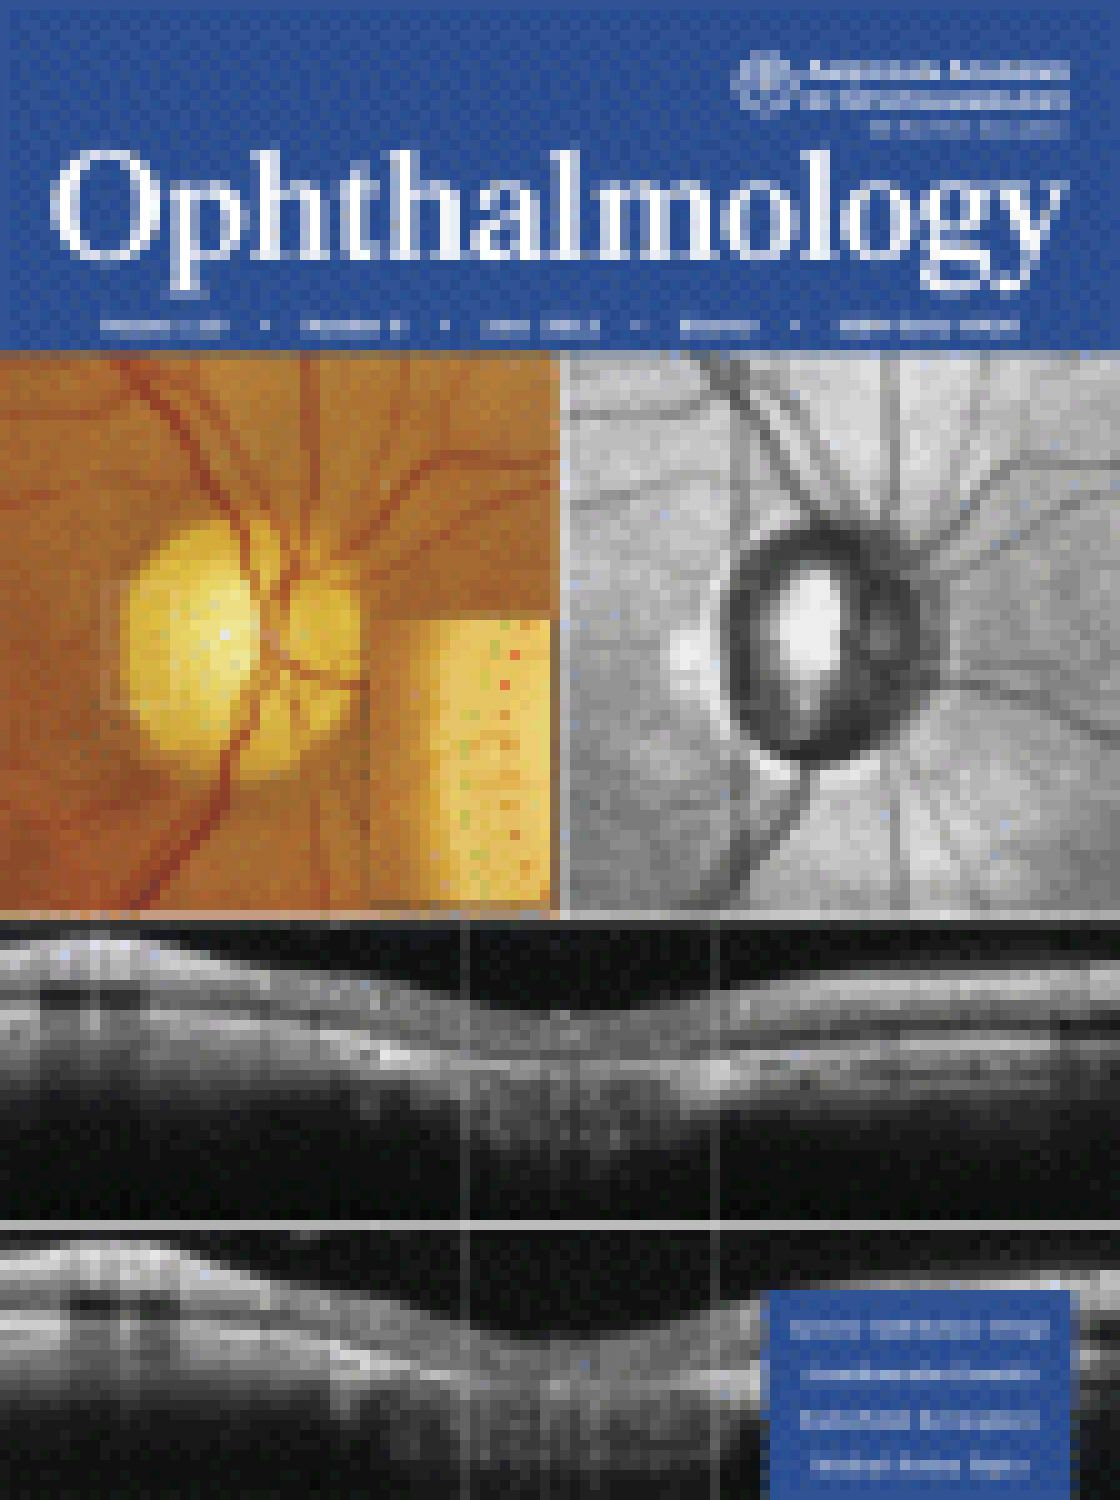 Choroidal thickness measurements